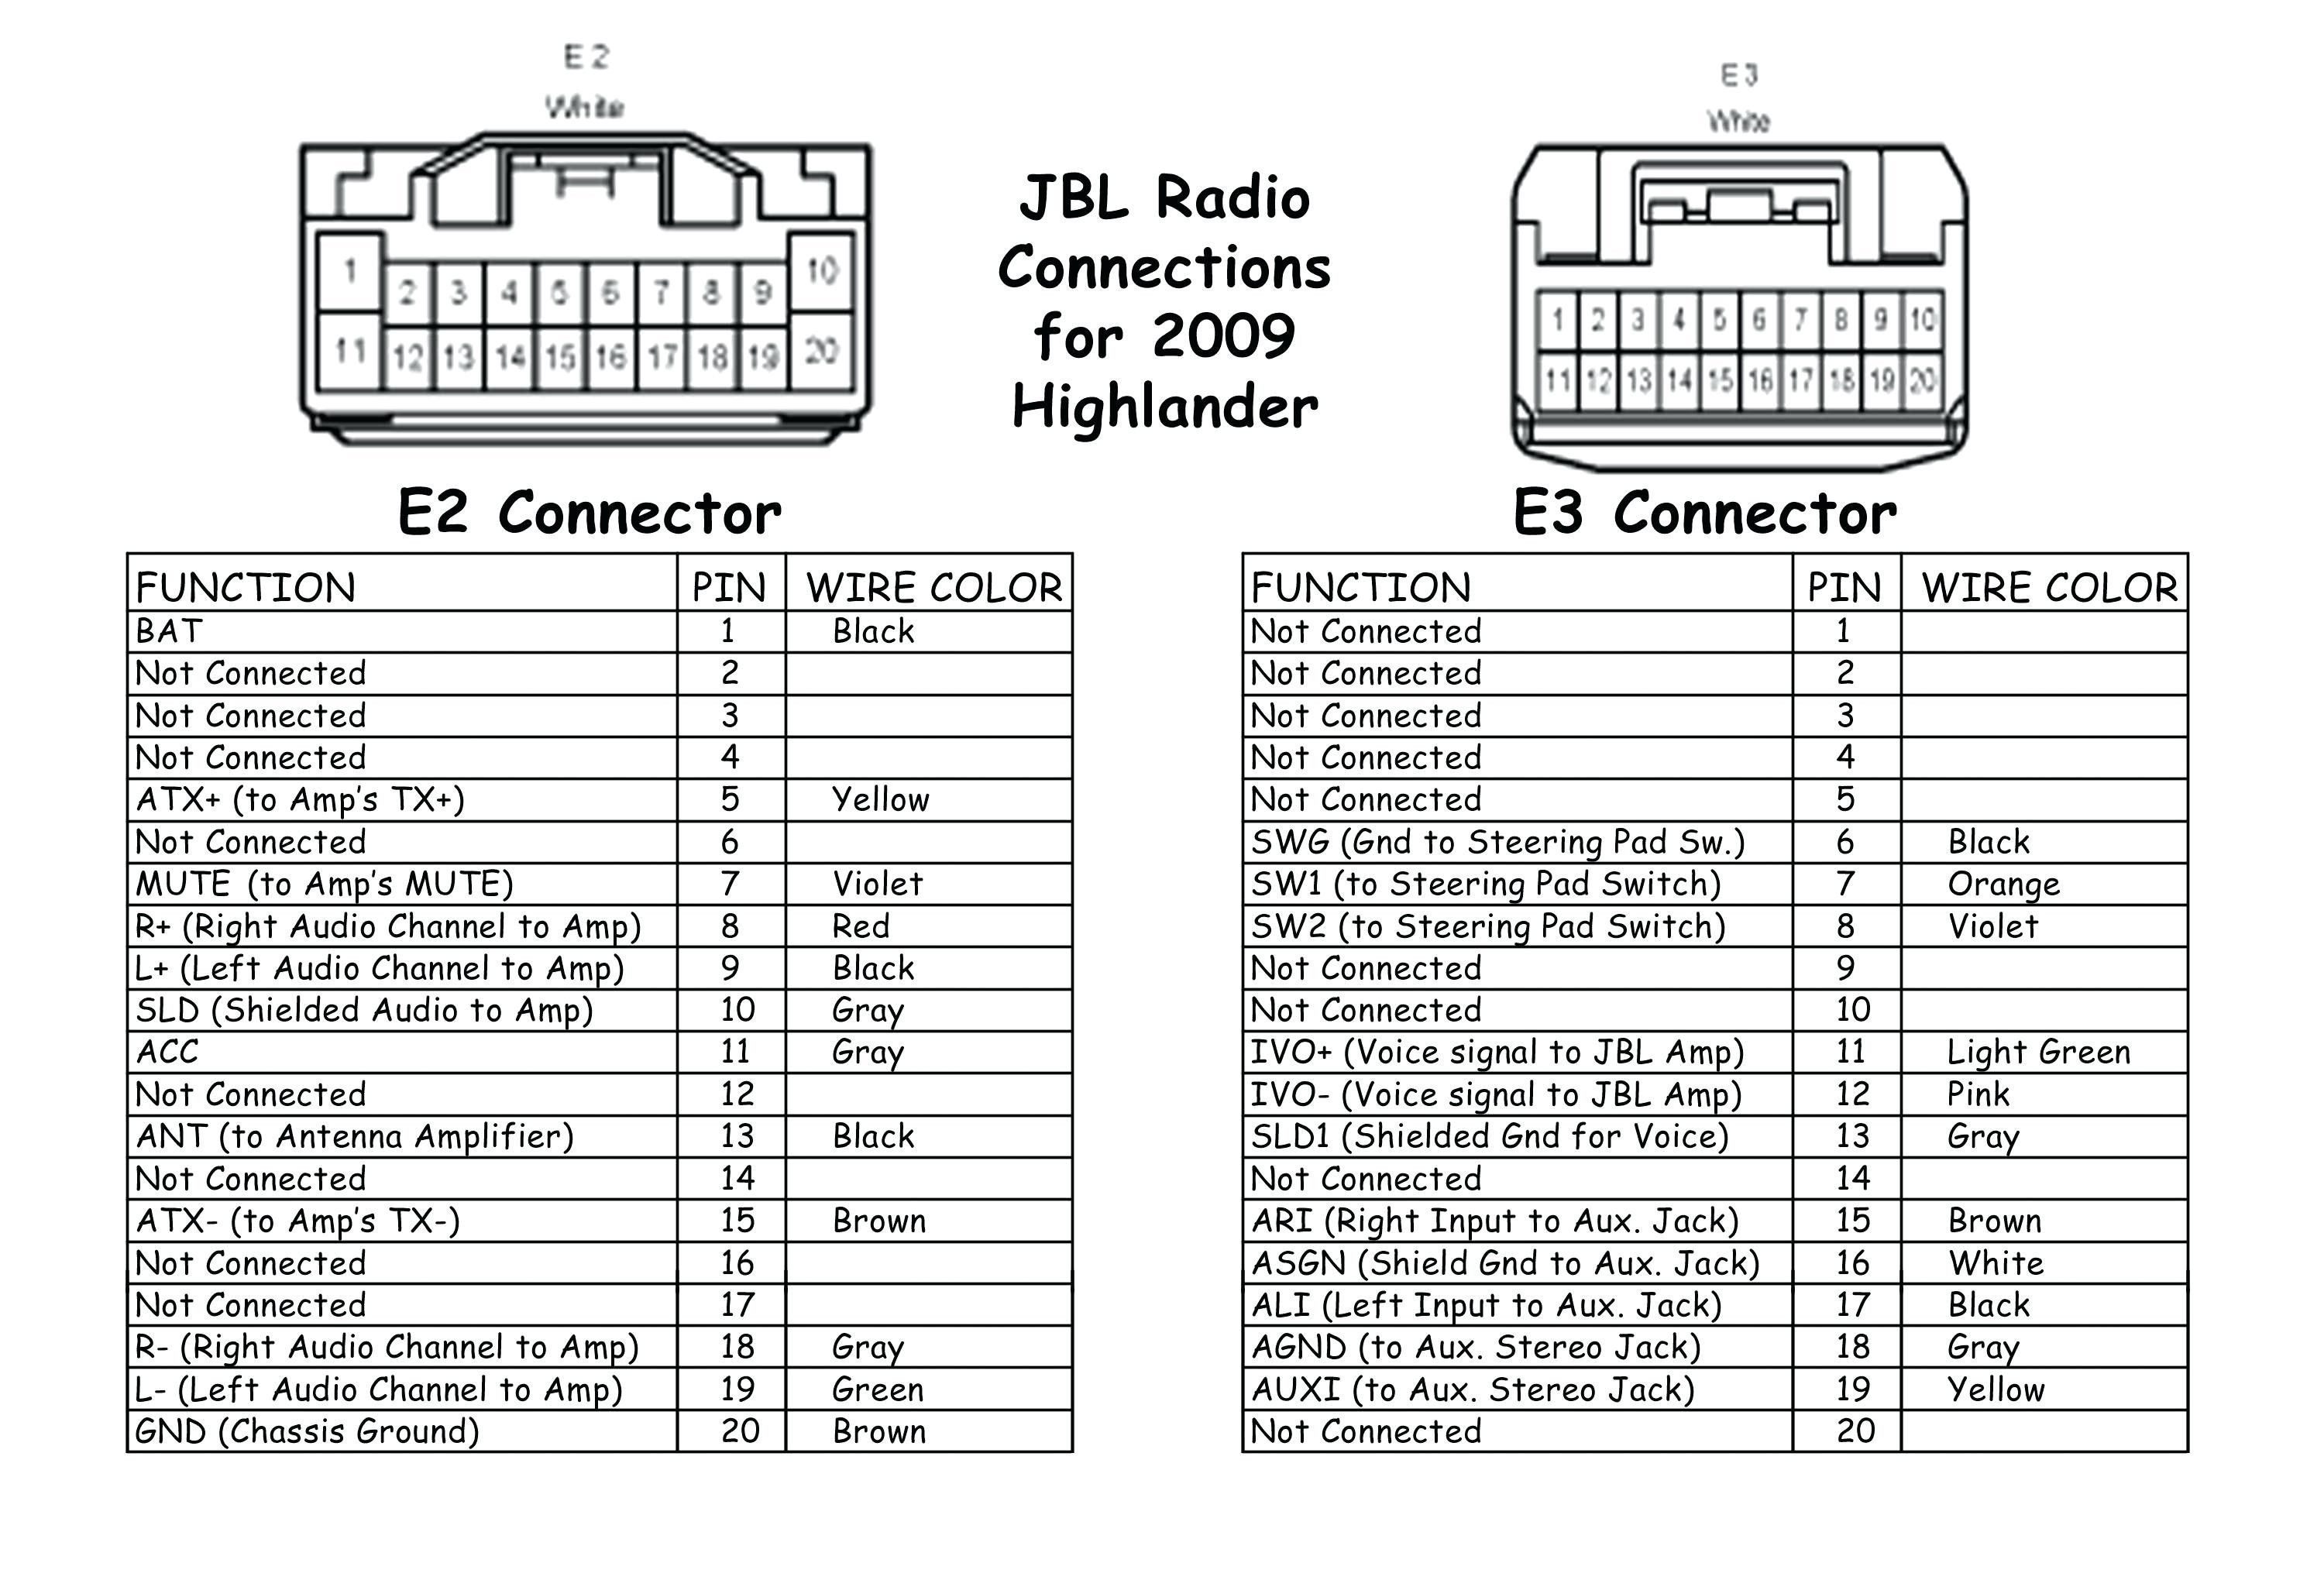 Inspirational 1997 Toyota Camry Radio Wiring Diagram In 2020 Pioneer Car Stereo Electrical Wiring Diagram Car Stereo